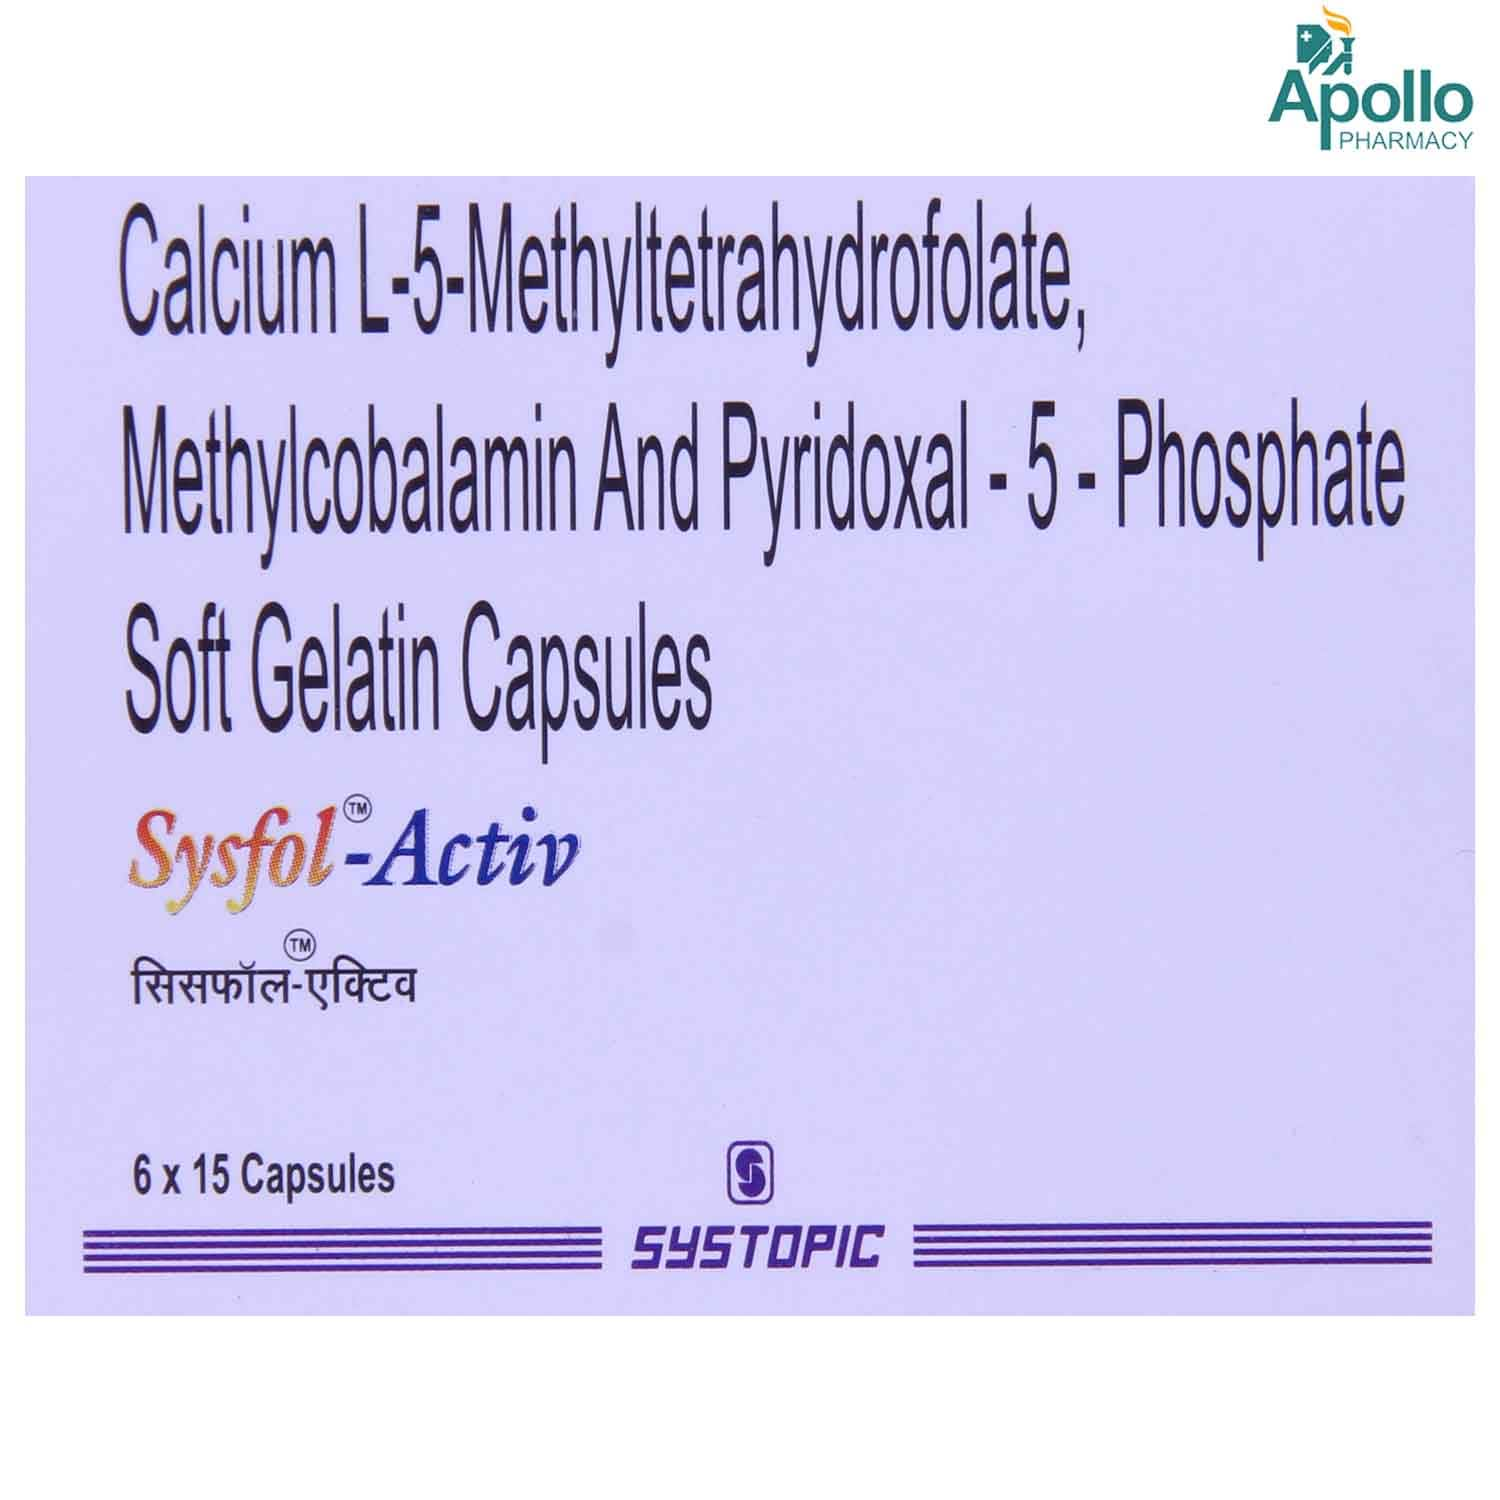 SYSFOL ACTIV SOFTGEL CAPSULE 15'S